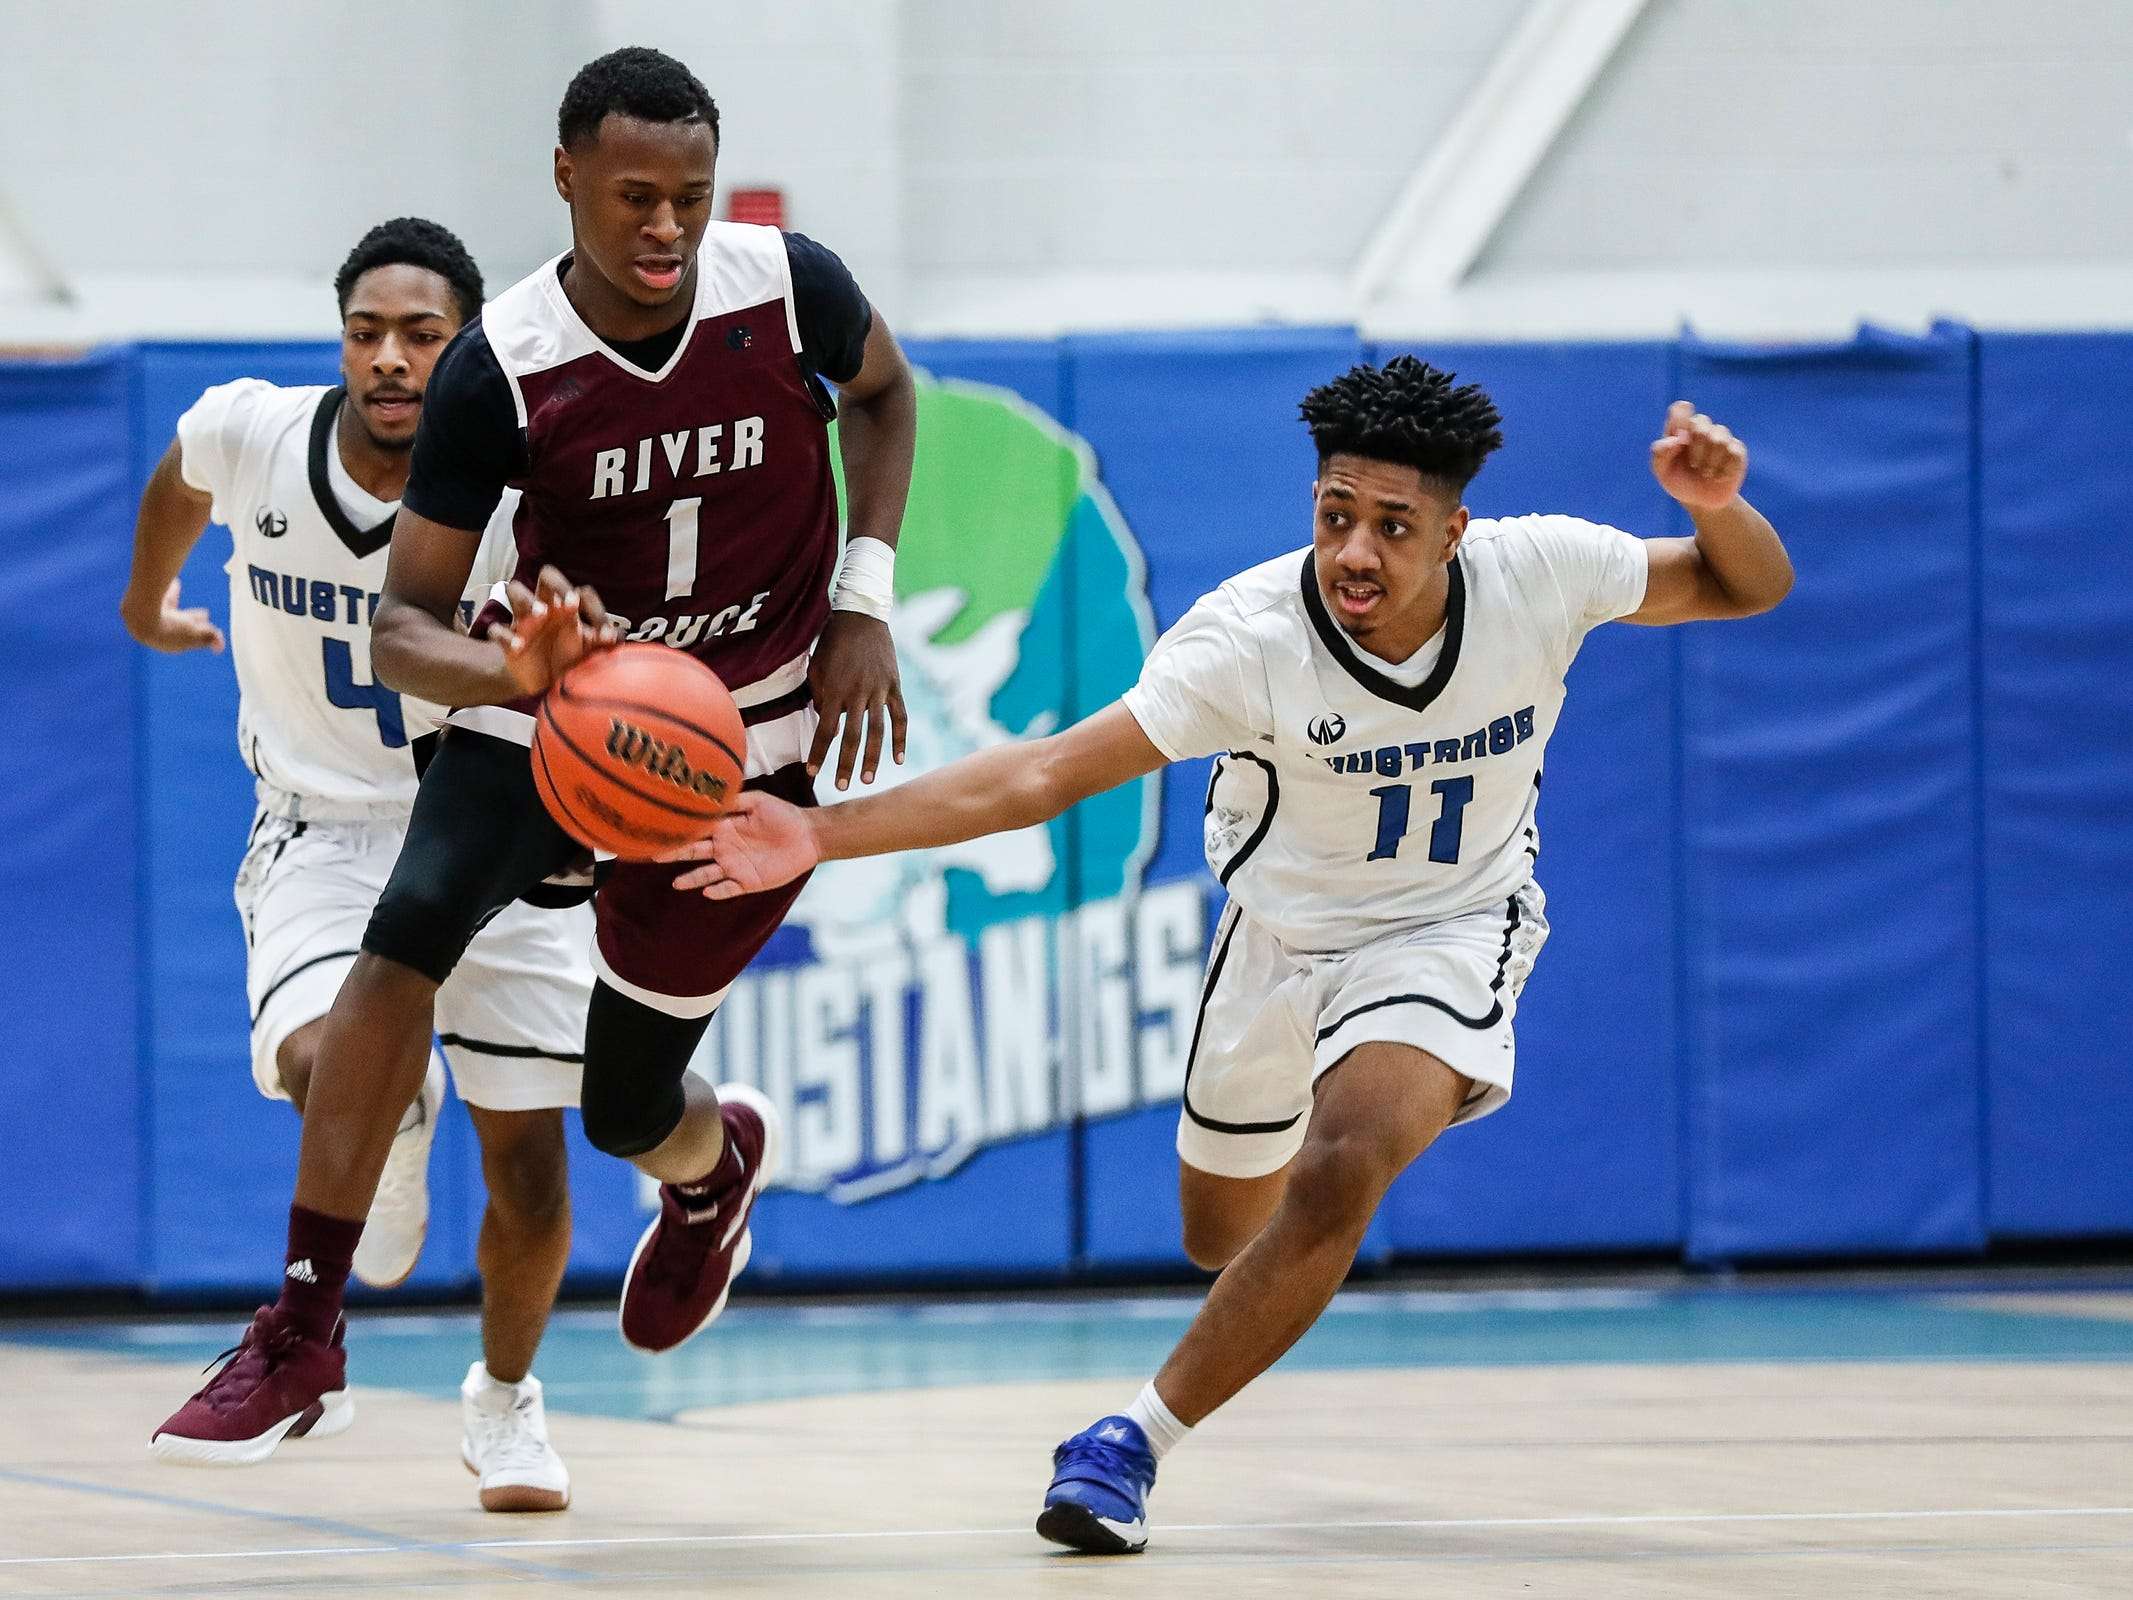 River Rouge's Donovan Freeman (1) and Henry Ford Academy: School for Creative Studies' Jabbar Martin Jr. (11) battle for the loose ball during first half at the A. Alfred Taubman Center For Design Education in Detroit, Tuesday, Jan. 8, 2019.